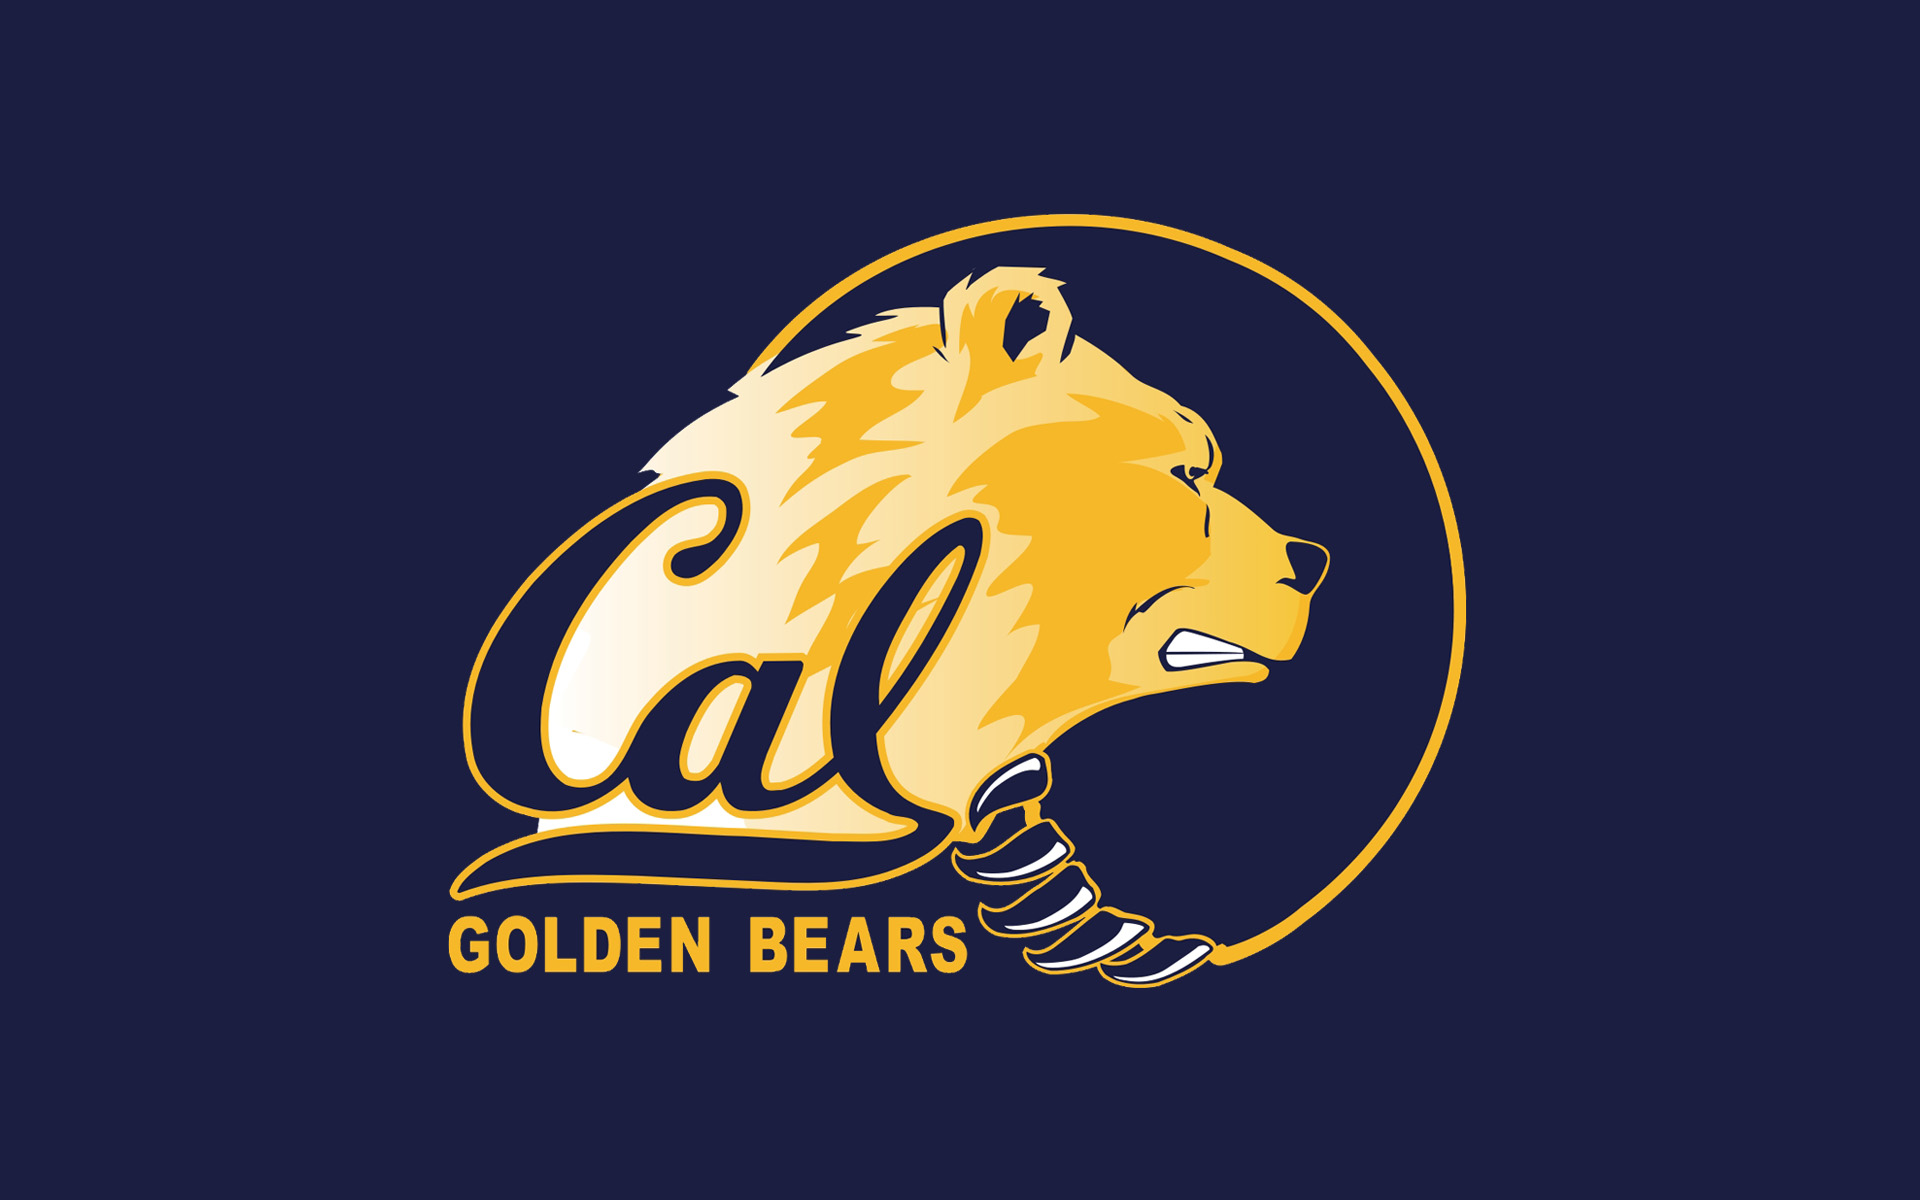 Cal golden bears suck